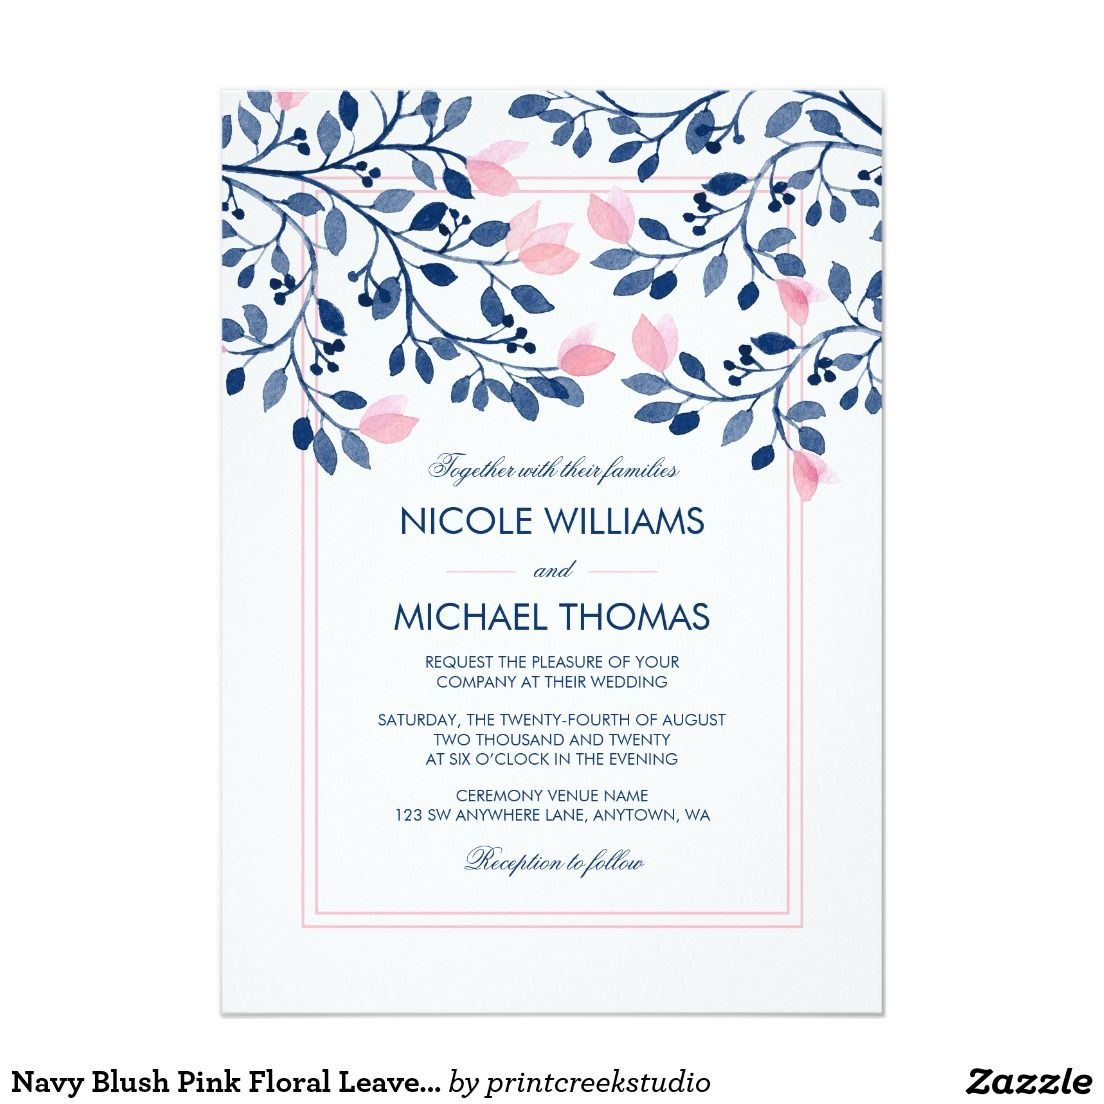 Navy Blush Pink Floral Leaves Watercolor Wedding Card Watercolor